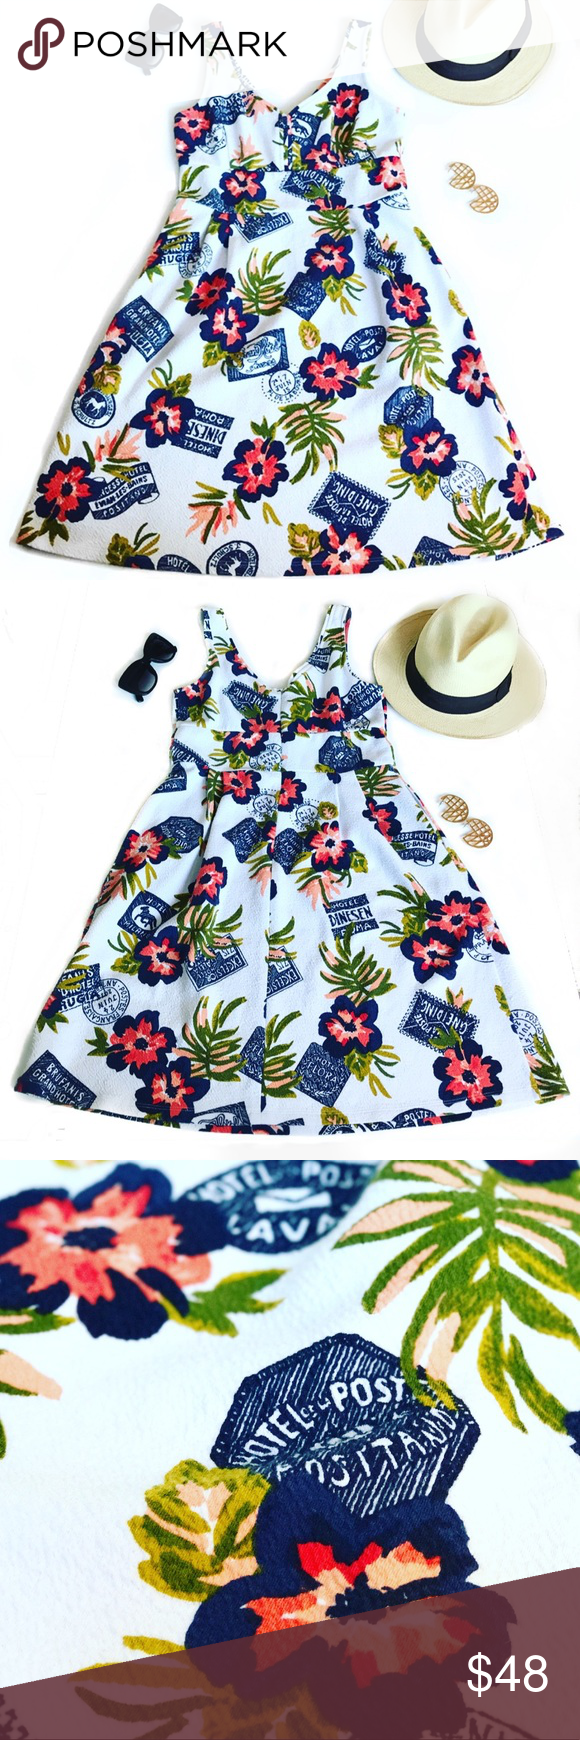 Maison Jules vacation dress with hidden pockets Maison Jules of Anthropologie, vacation summer dress, cotton mix, with hidden pockets. It will fit a perfect size 6! Super confortable, soft and fresh! The dress looks like new! No stains, no broken, no flaws! Anthropologie Dresses Midi